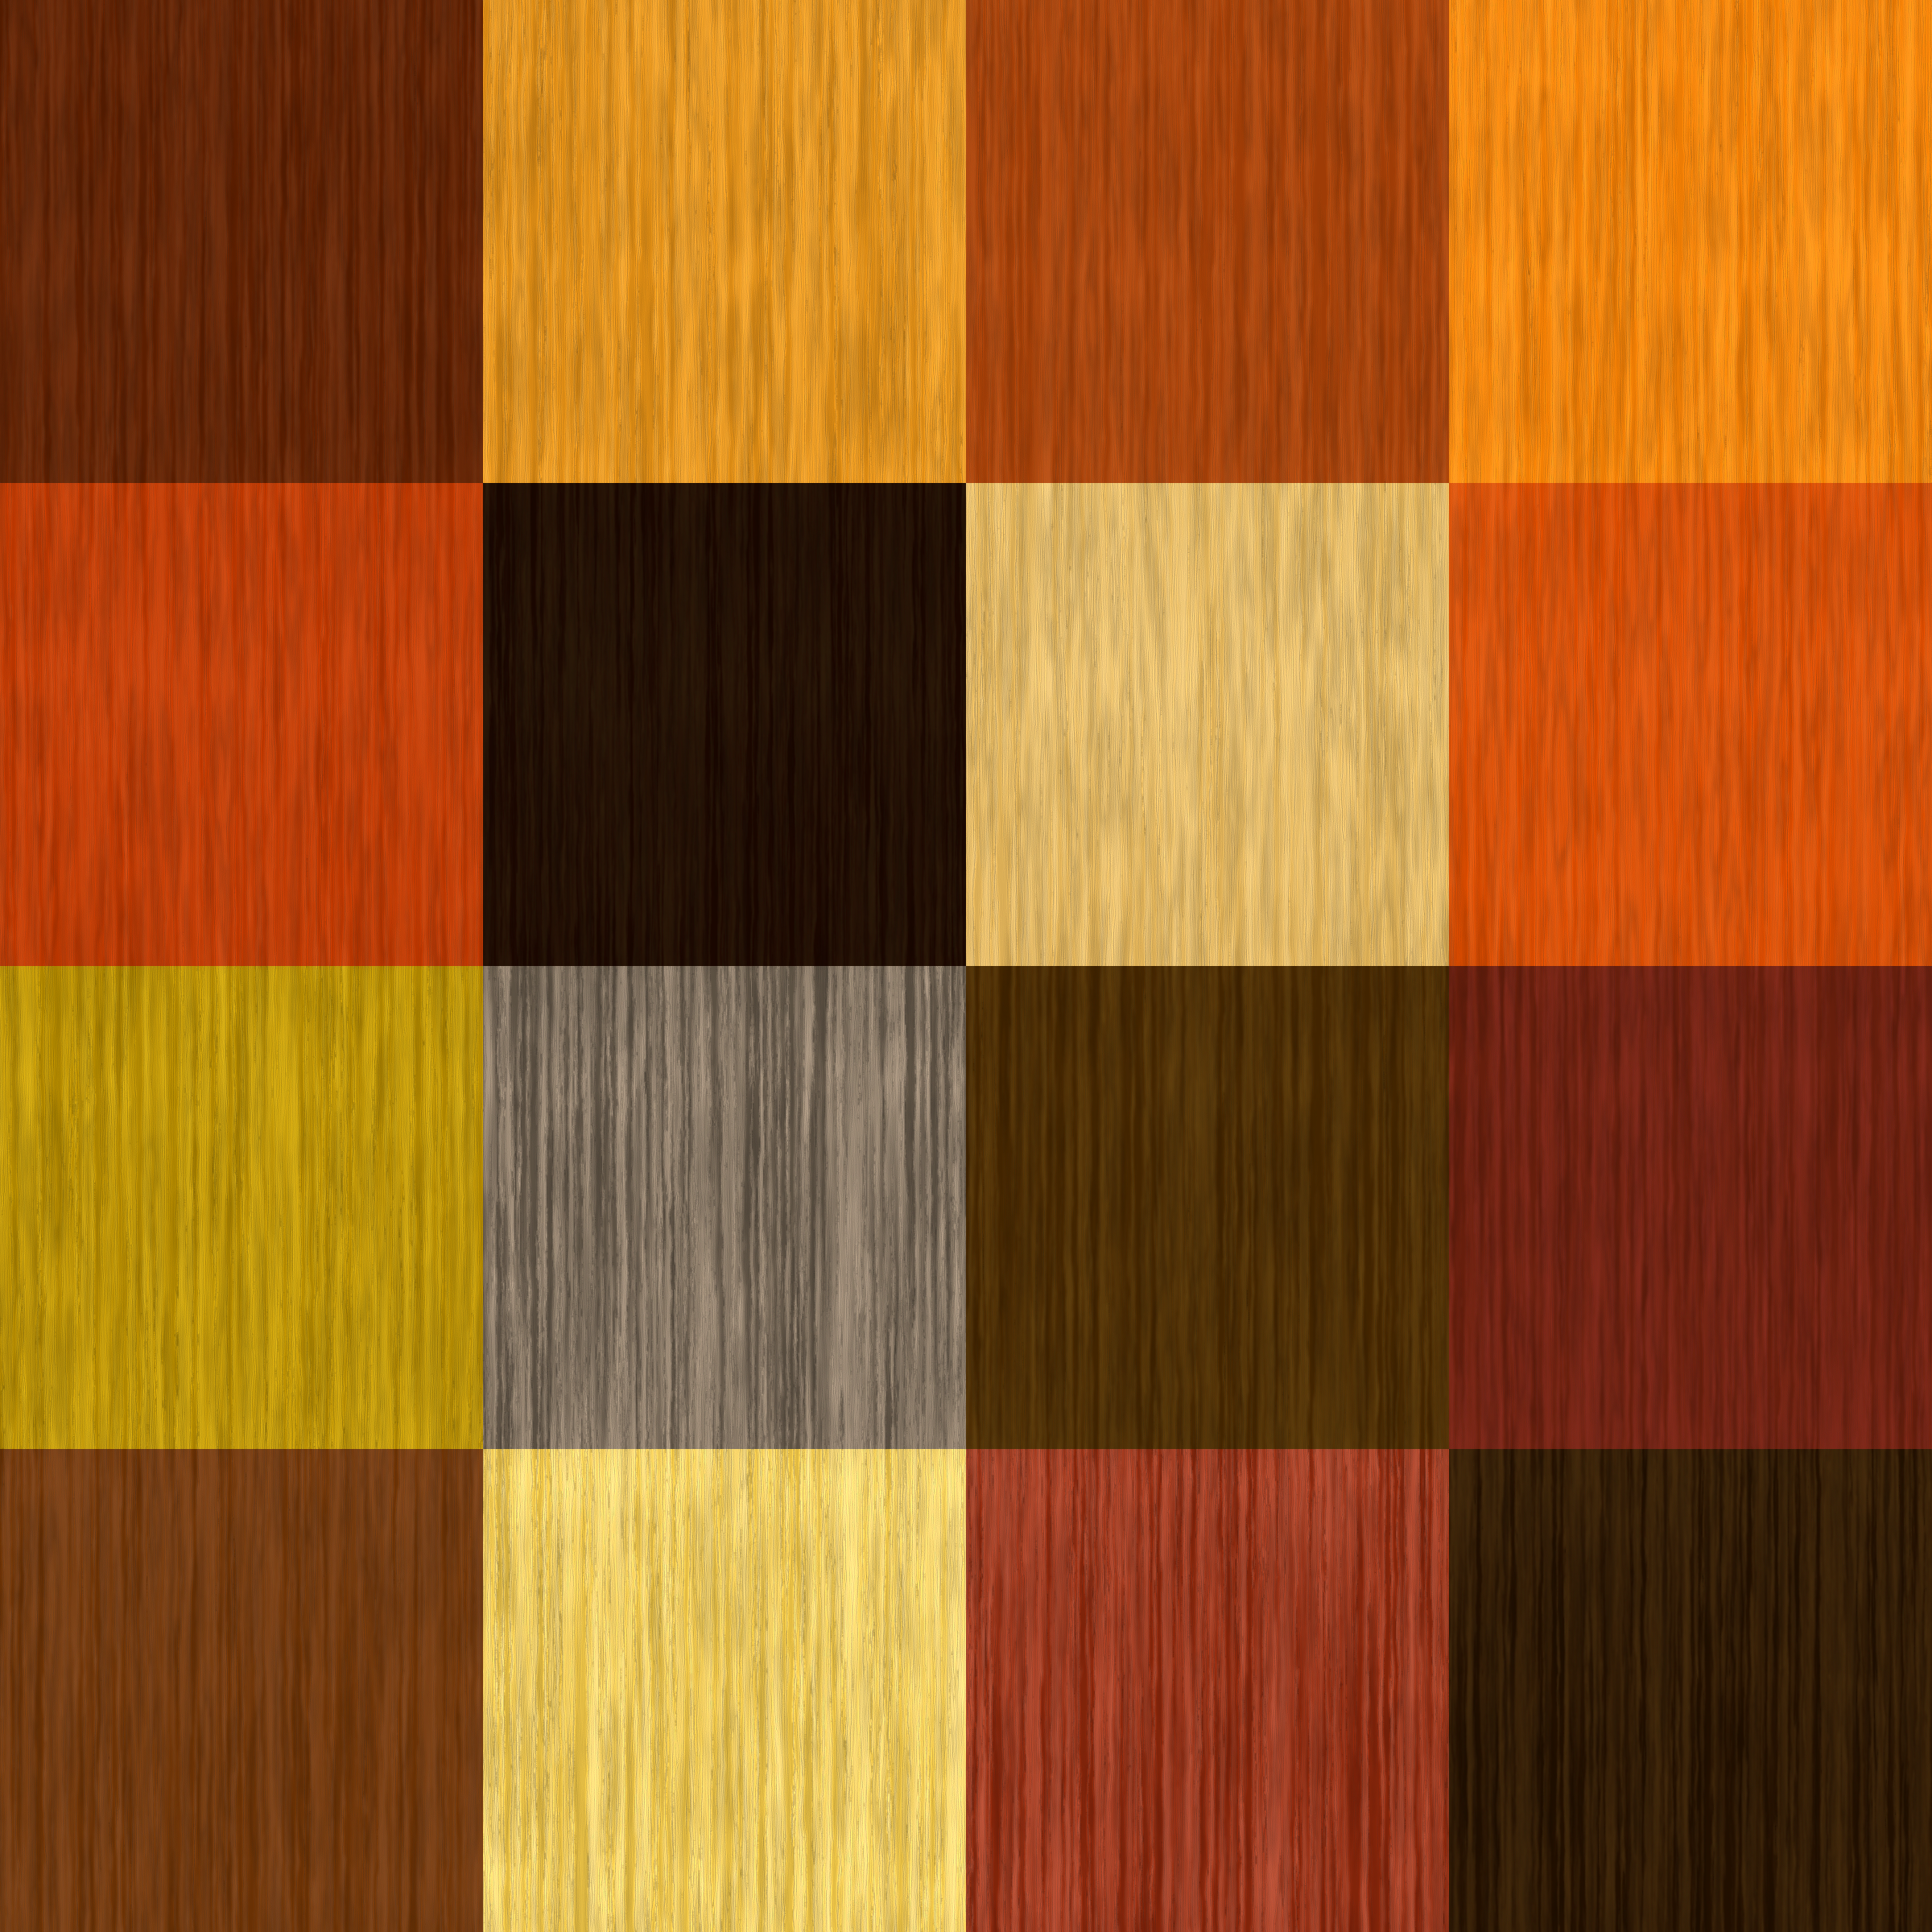 wood grain filter pack 2 by Lazur URH